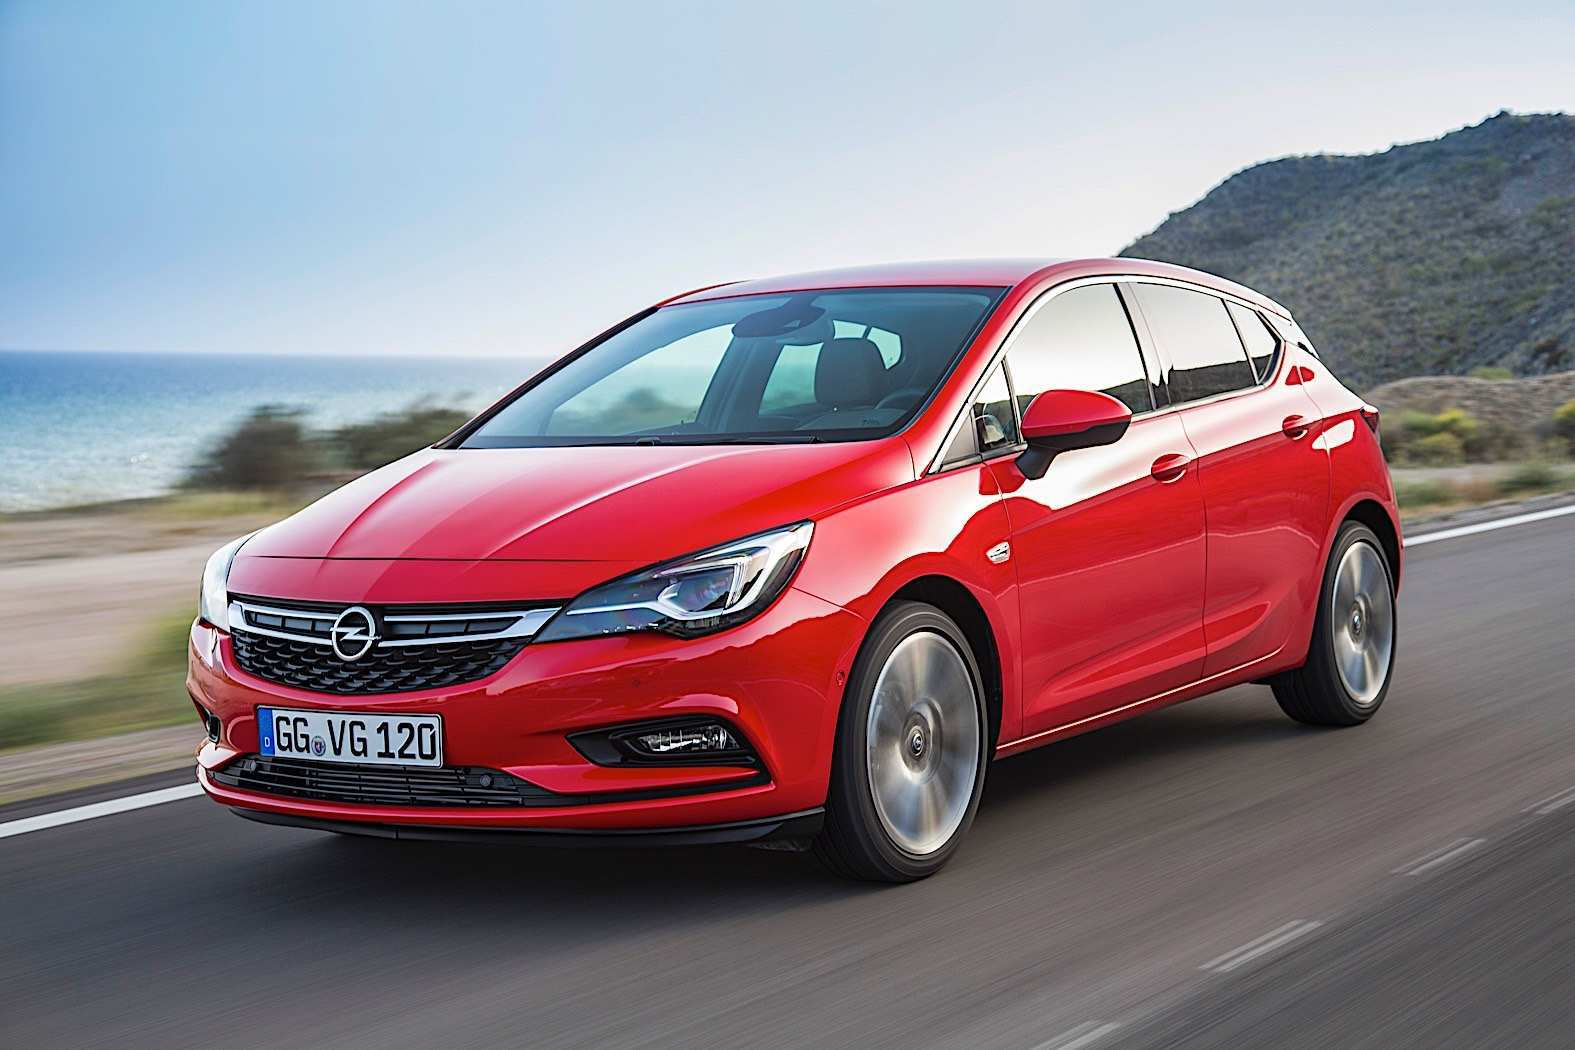 21 New Opel Astra K 2020 Price for Opel Astra K 2020